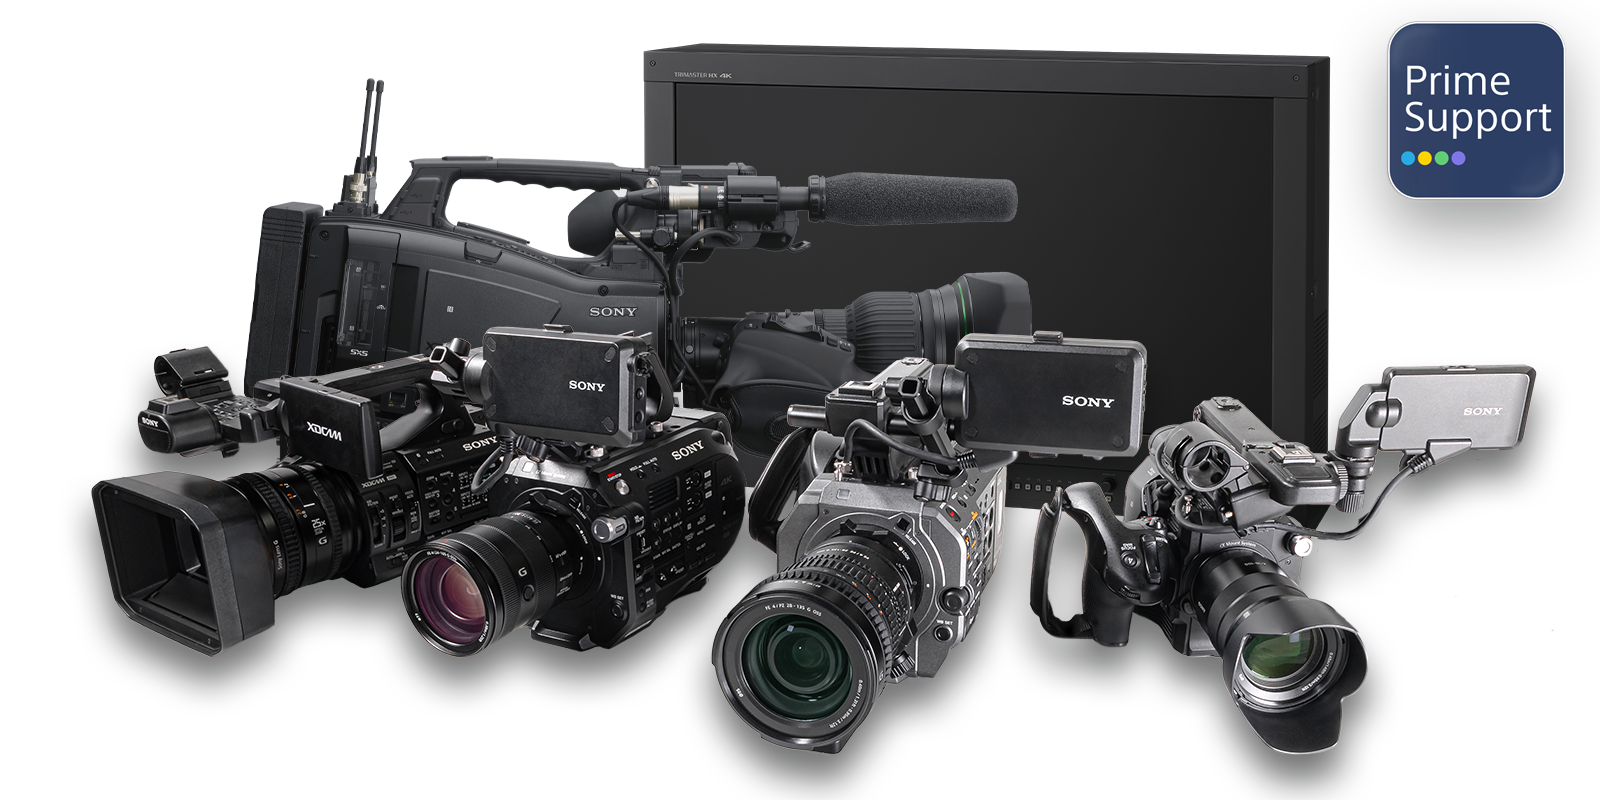 Group shot of Sony Camcorders & Monitor with PrimeSupport logo.